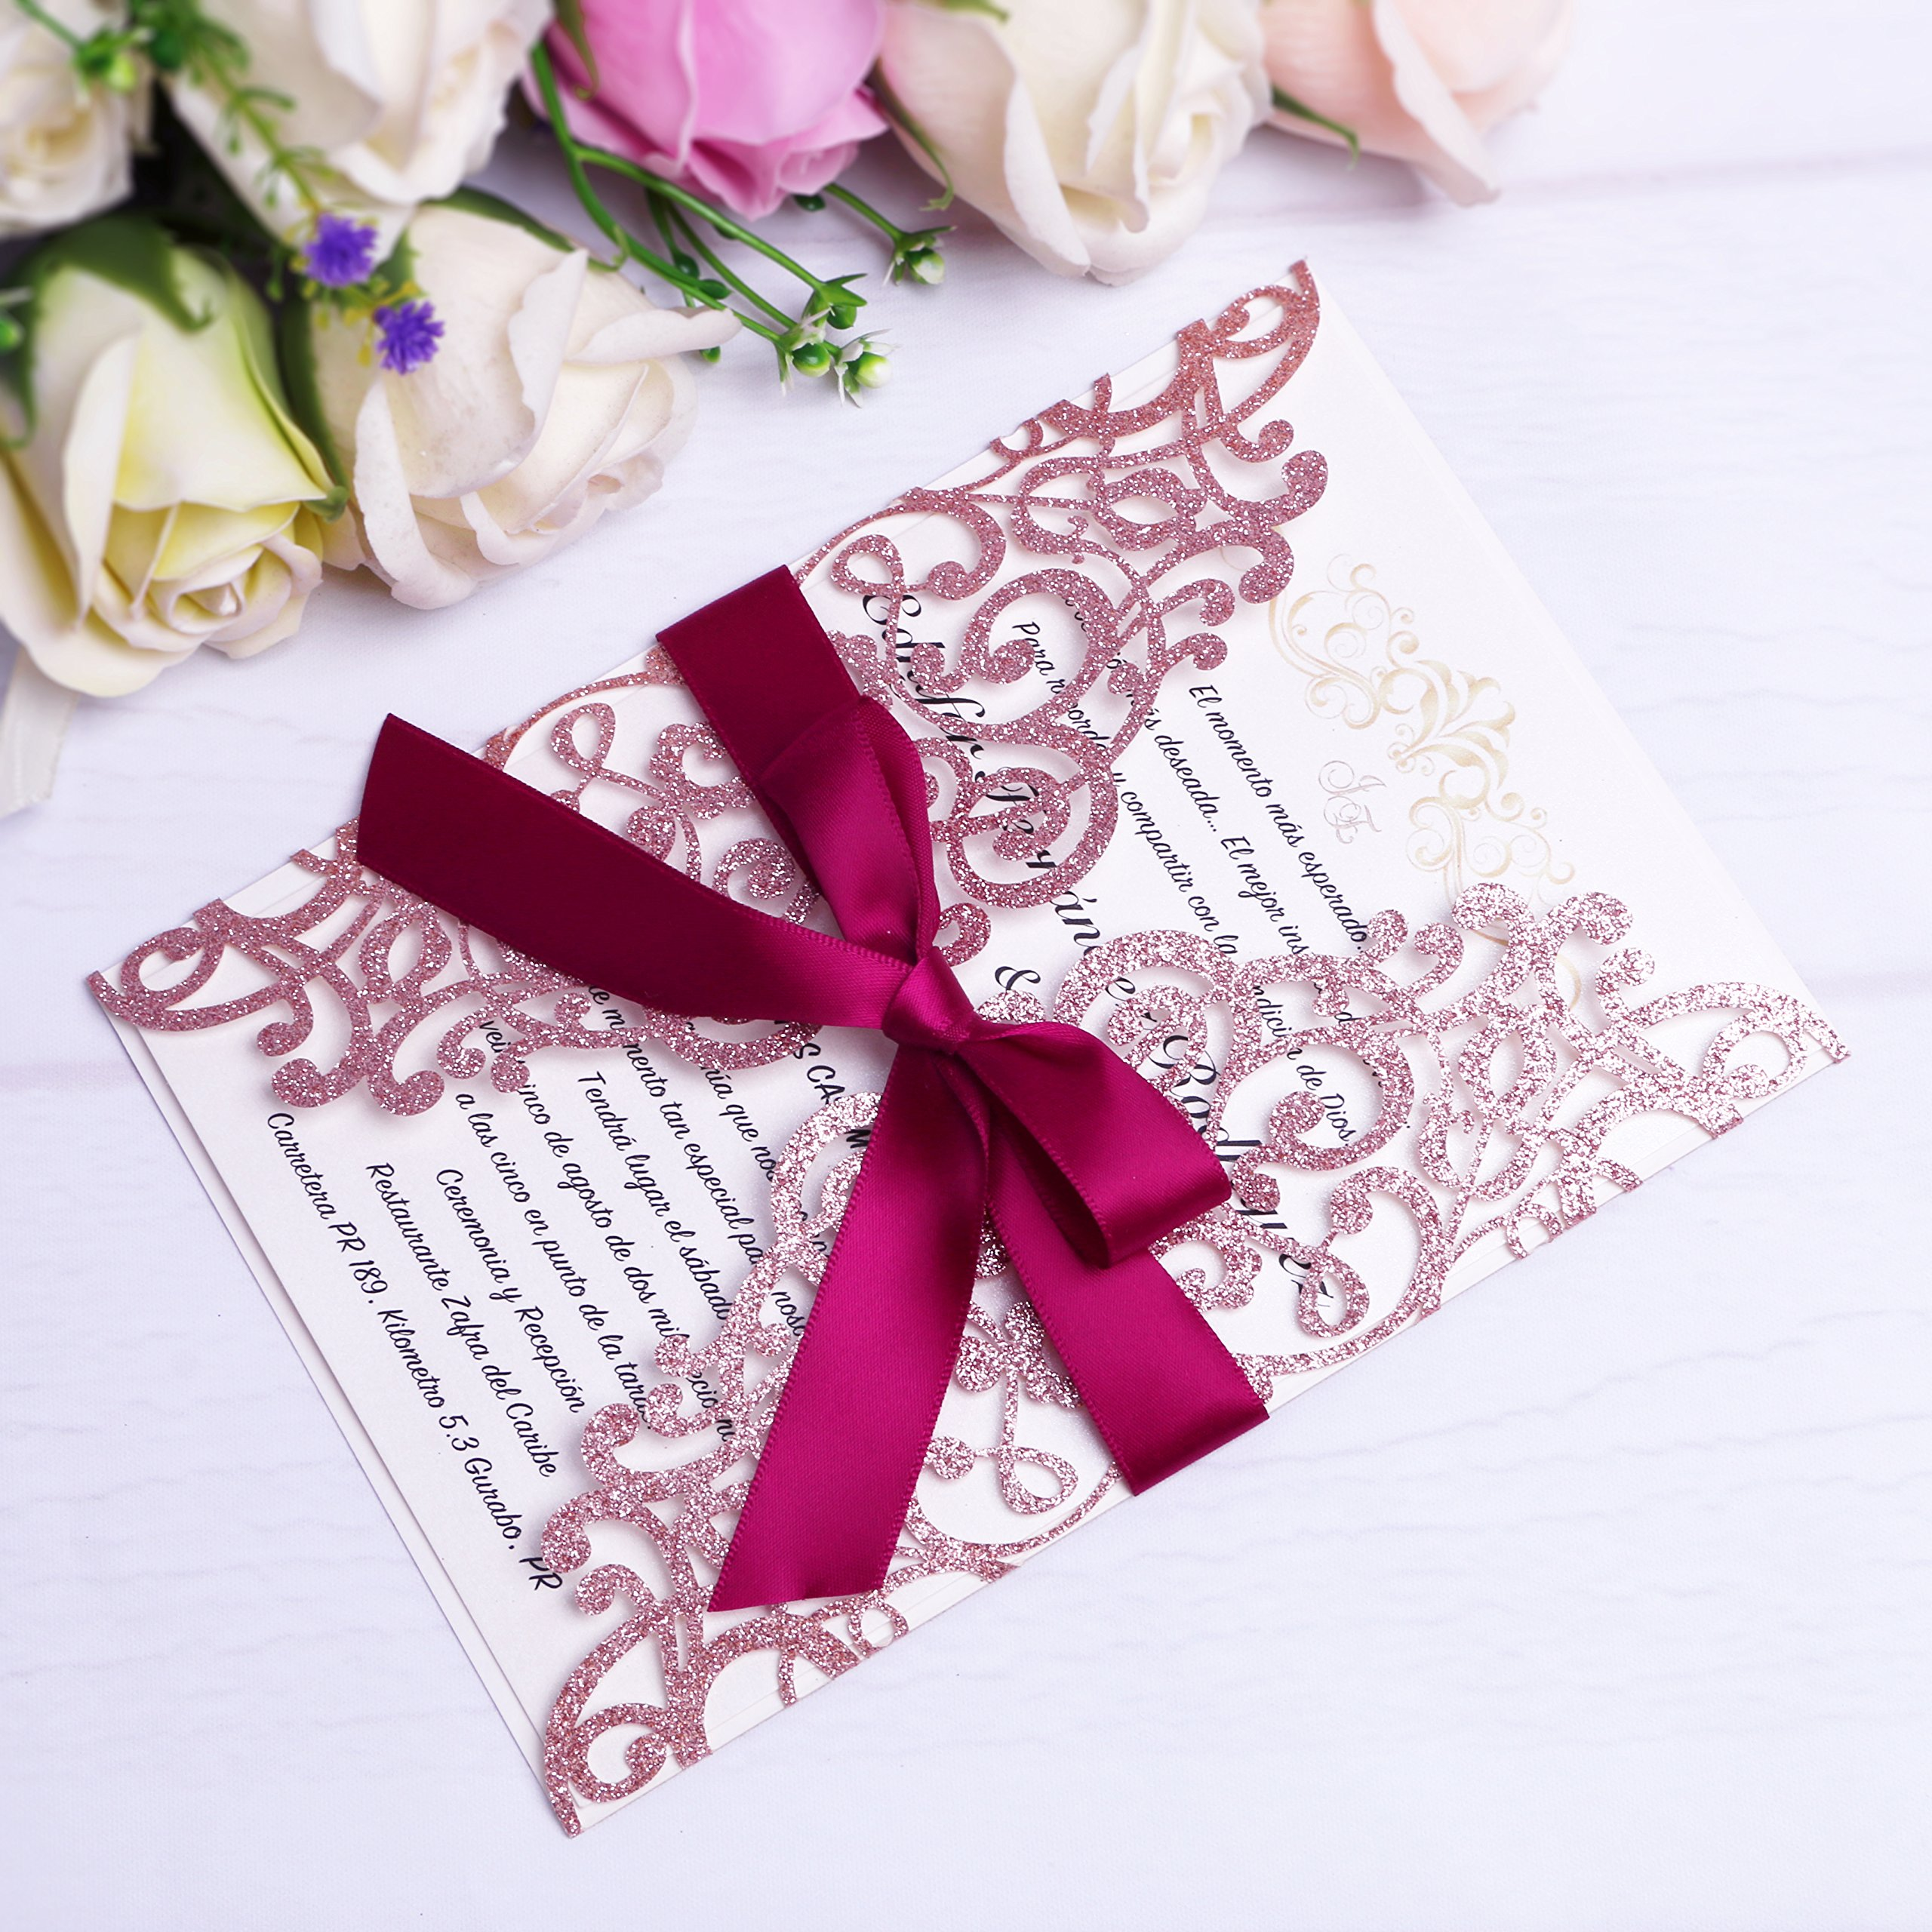 PONATIA 25PCS Laser Cut Hollow rose with drill Invitation Card Wedding Bridal Shower Engagement Birthday Graduation Invitation Cards (Rose Gold Glitter + Burgundy Ribbon)